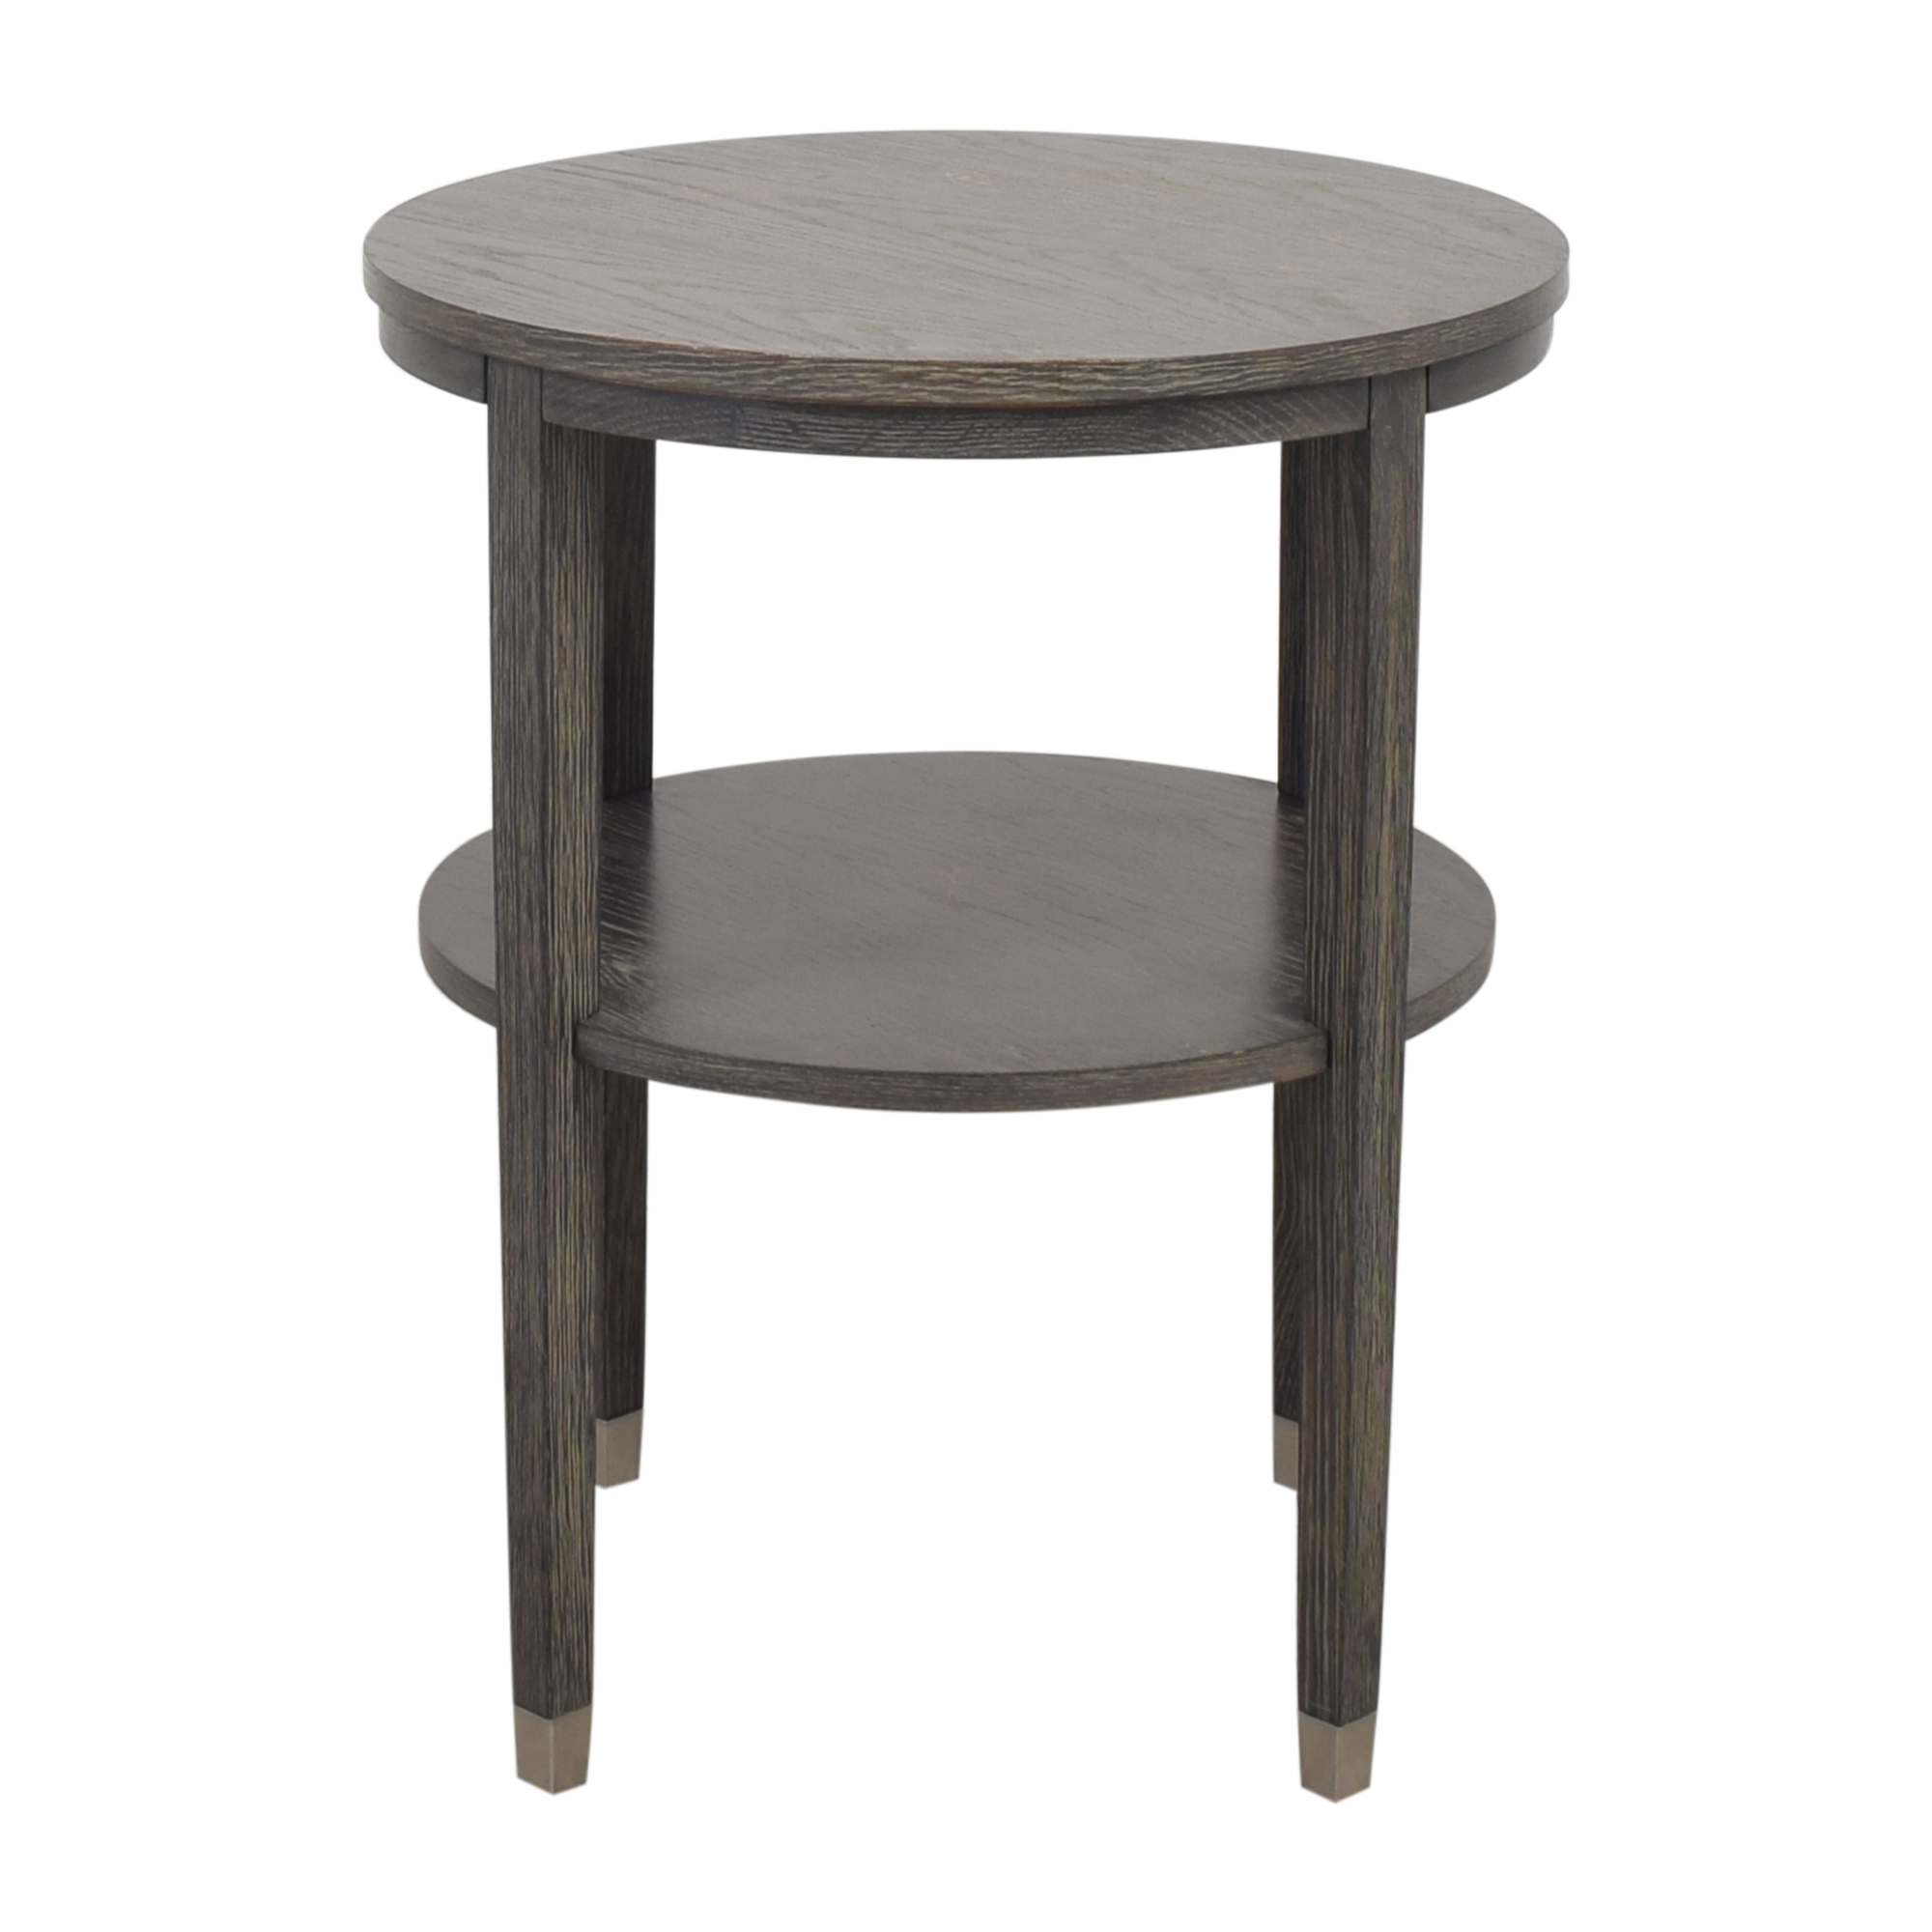 Arteriors Arteriors Home Gentry Side Table discount